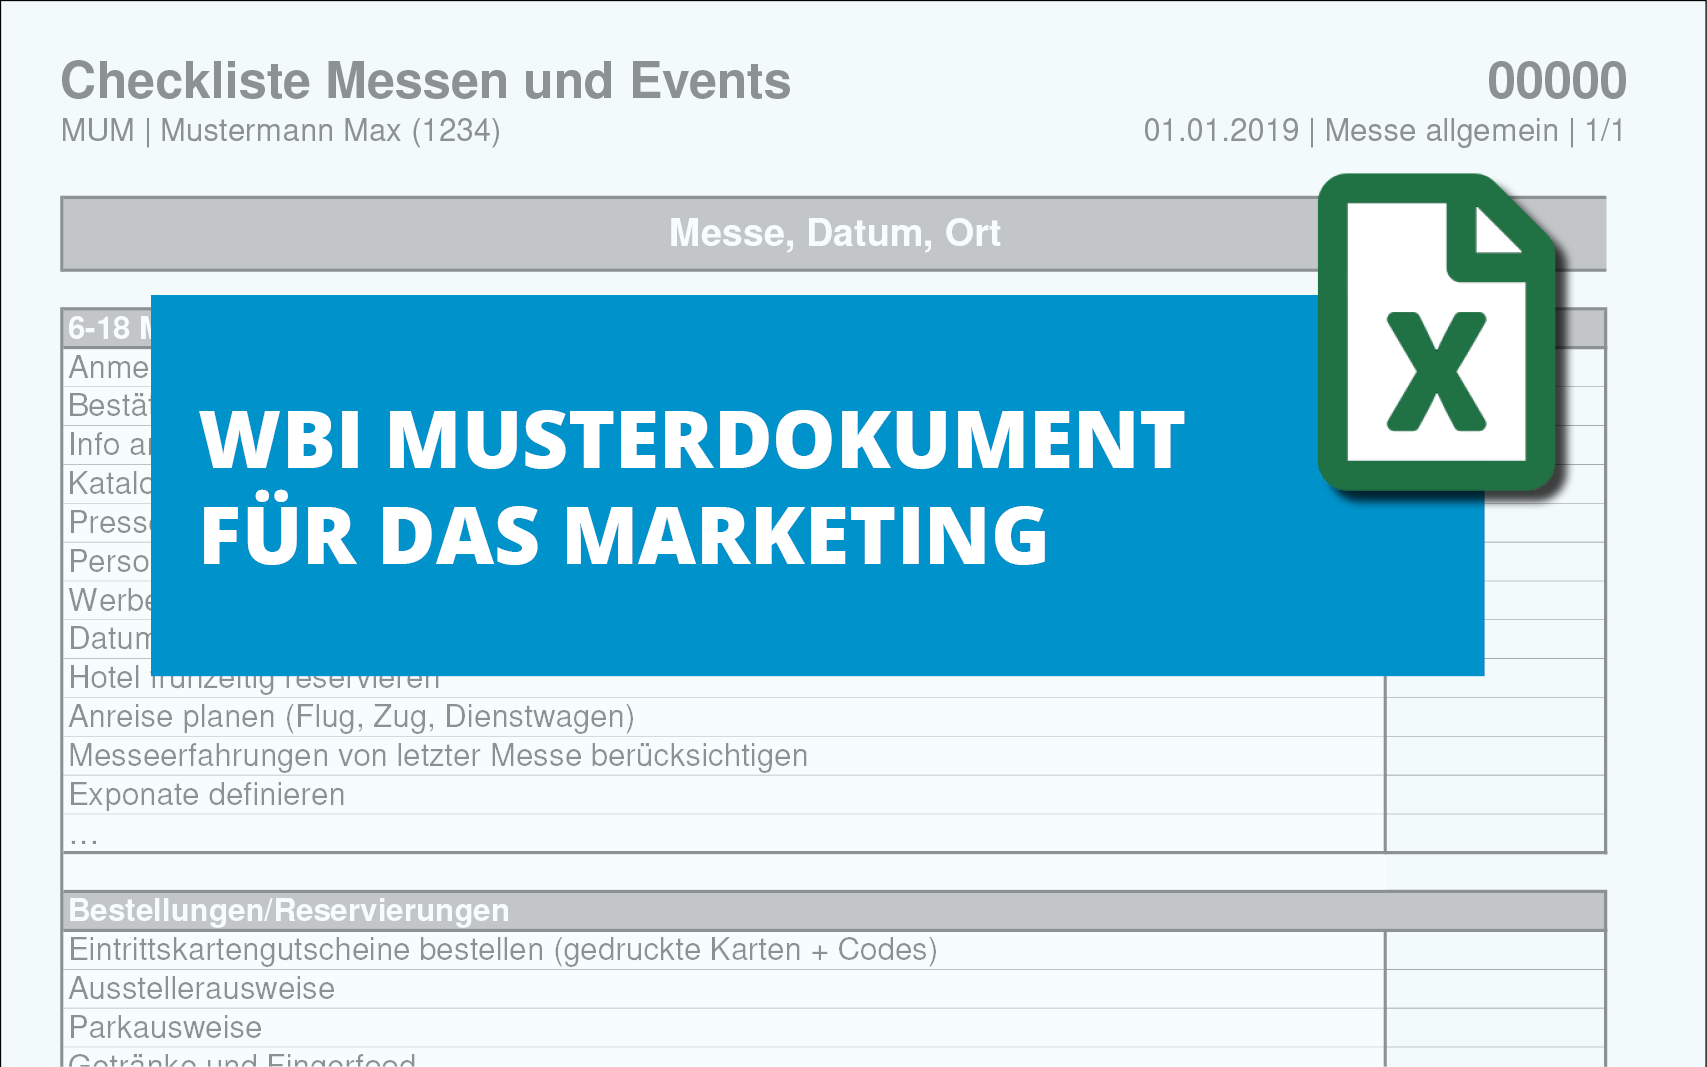 checkliste-messen-und-events